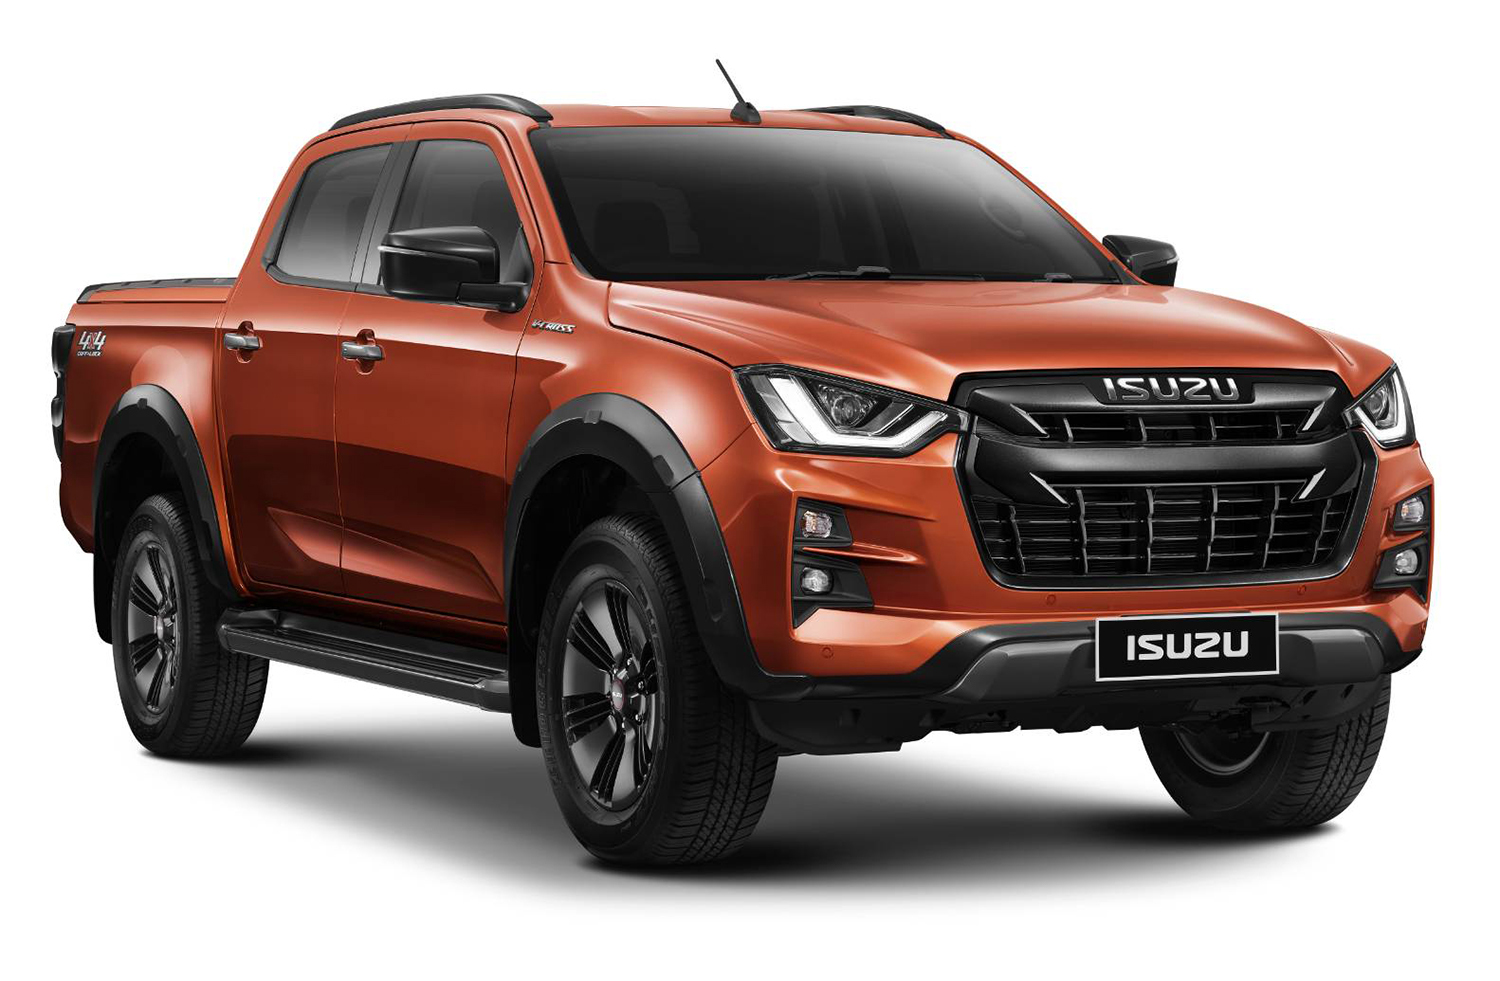 48 Concept of 2020 Isuzu Dmax Wallpaper by 2020 Isuzu Dmax